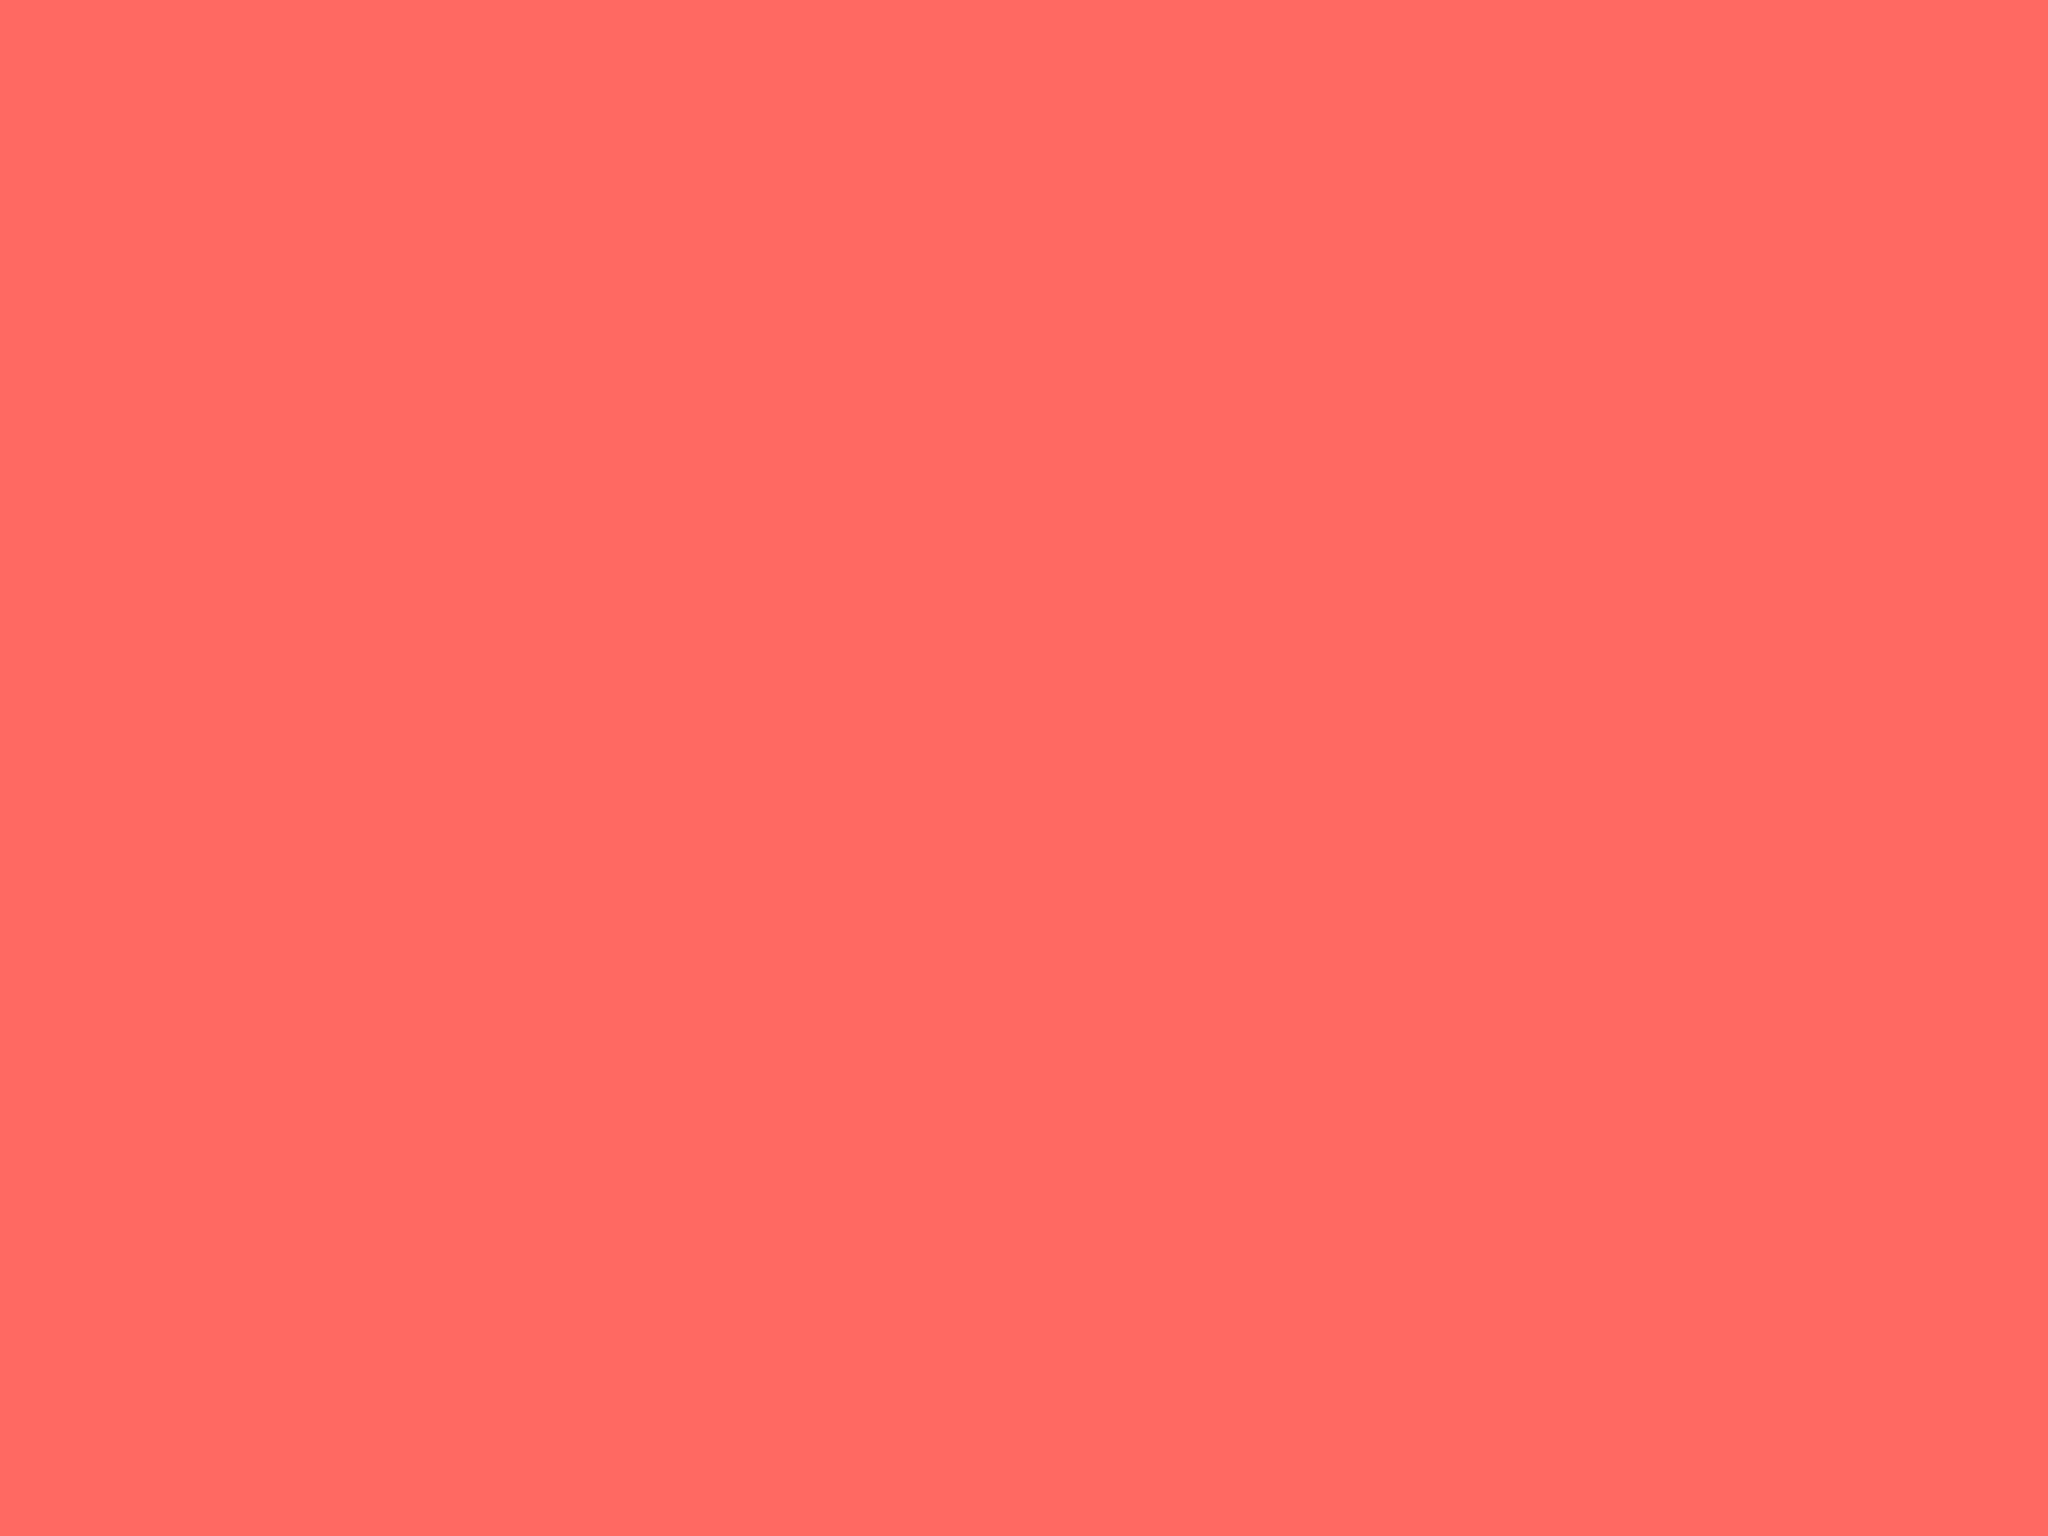 2048x1536 Pastel Red Solid Color Background